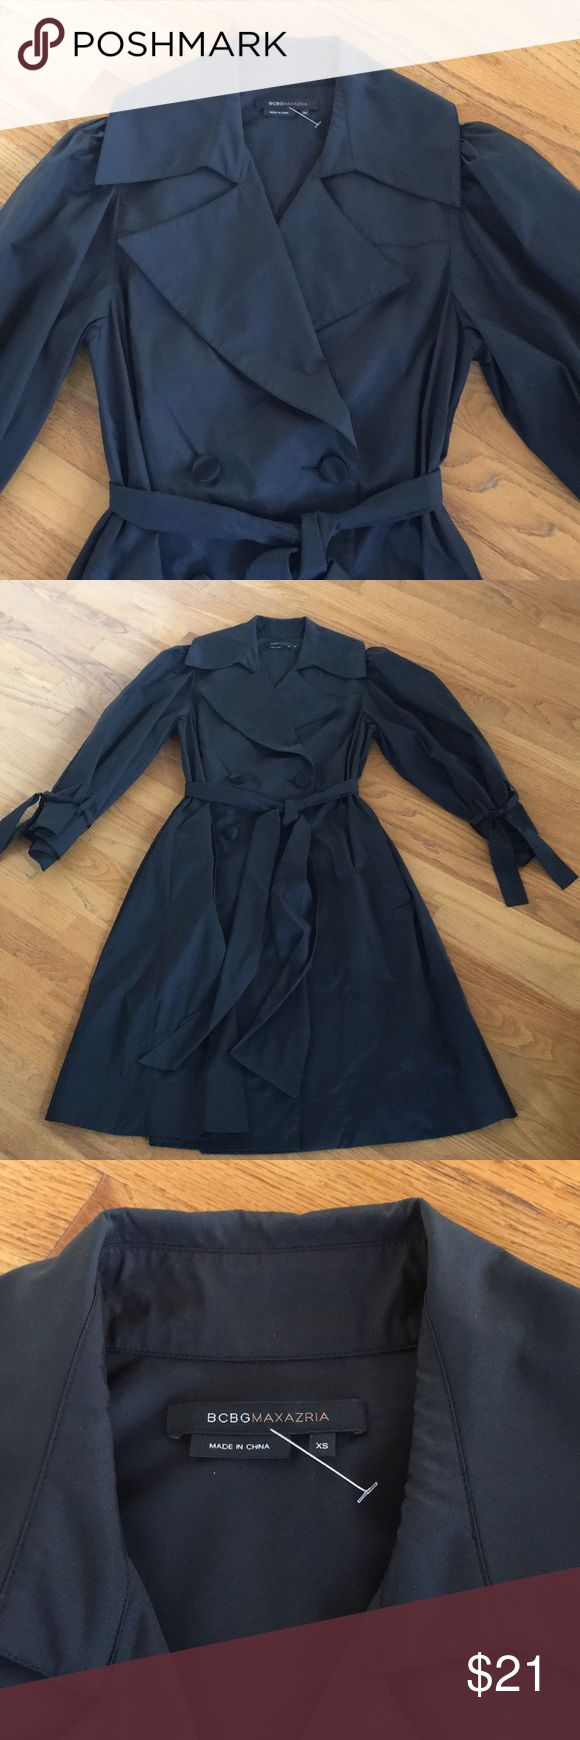 BCBGMaxazria Coat Authentic BCBG Maxazria coat. Size XS. Fits more like a size small. 100% polyester taffeta. Trent style with a beautiful flair. Sleeves have ties to adjust the fit. Has a beautiful waist sash that can be tied. Beautiful covered buttons. Brand new and never worn. Dryclean only. Comes from a smoke free and pet free home. Will ship ASAP. Please check out my other items. BCBGMaxAzria Jackets & Coats Trench Coats